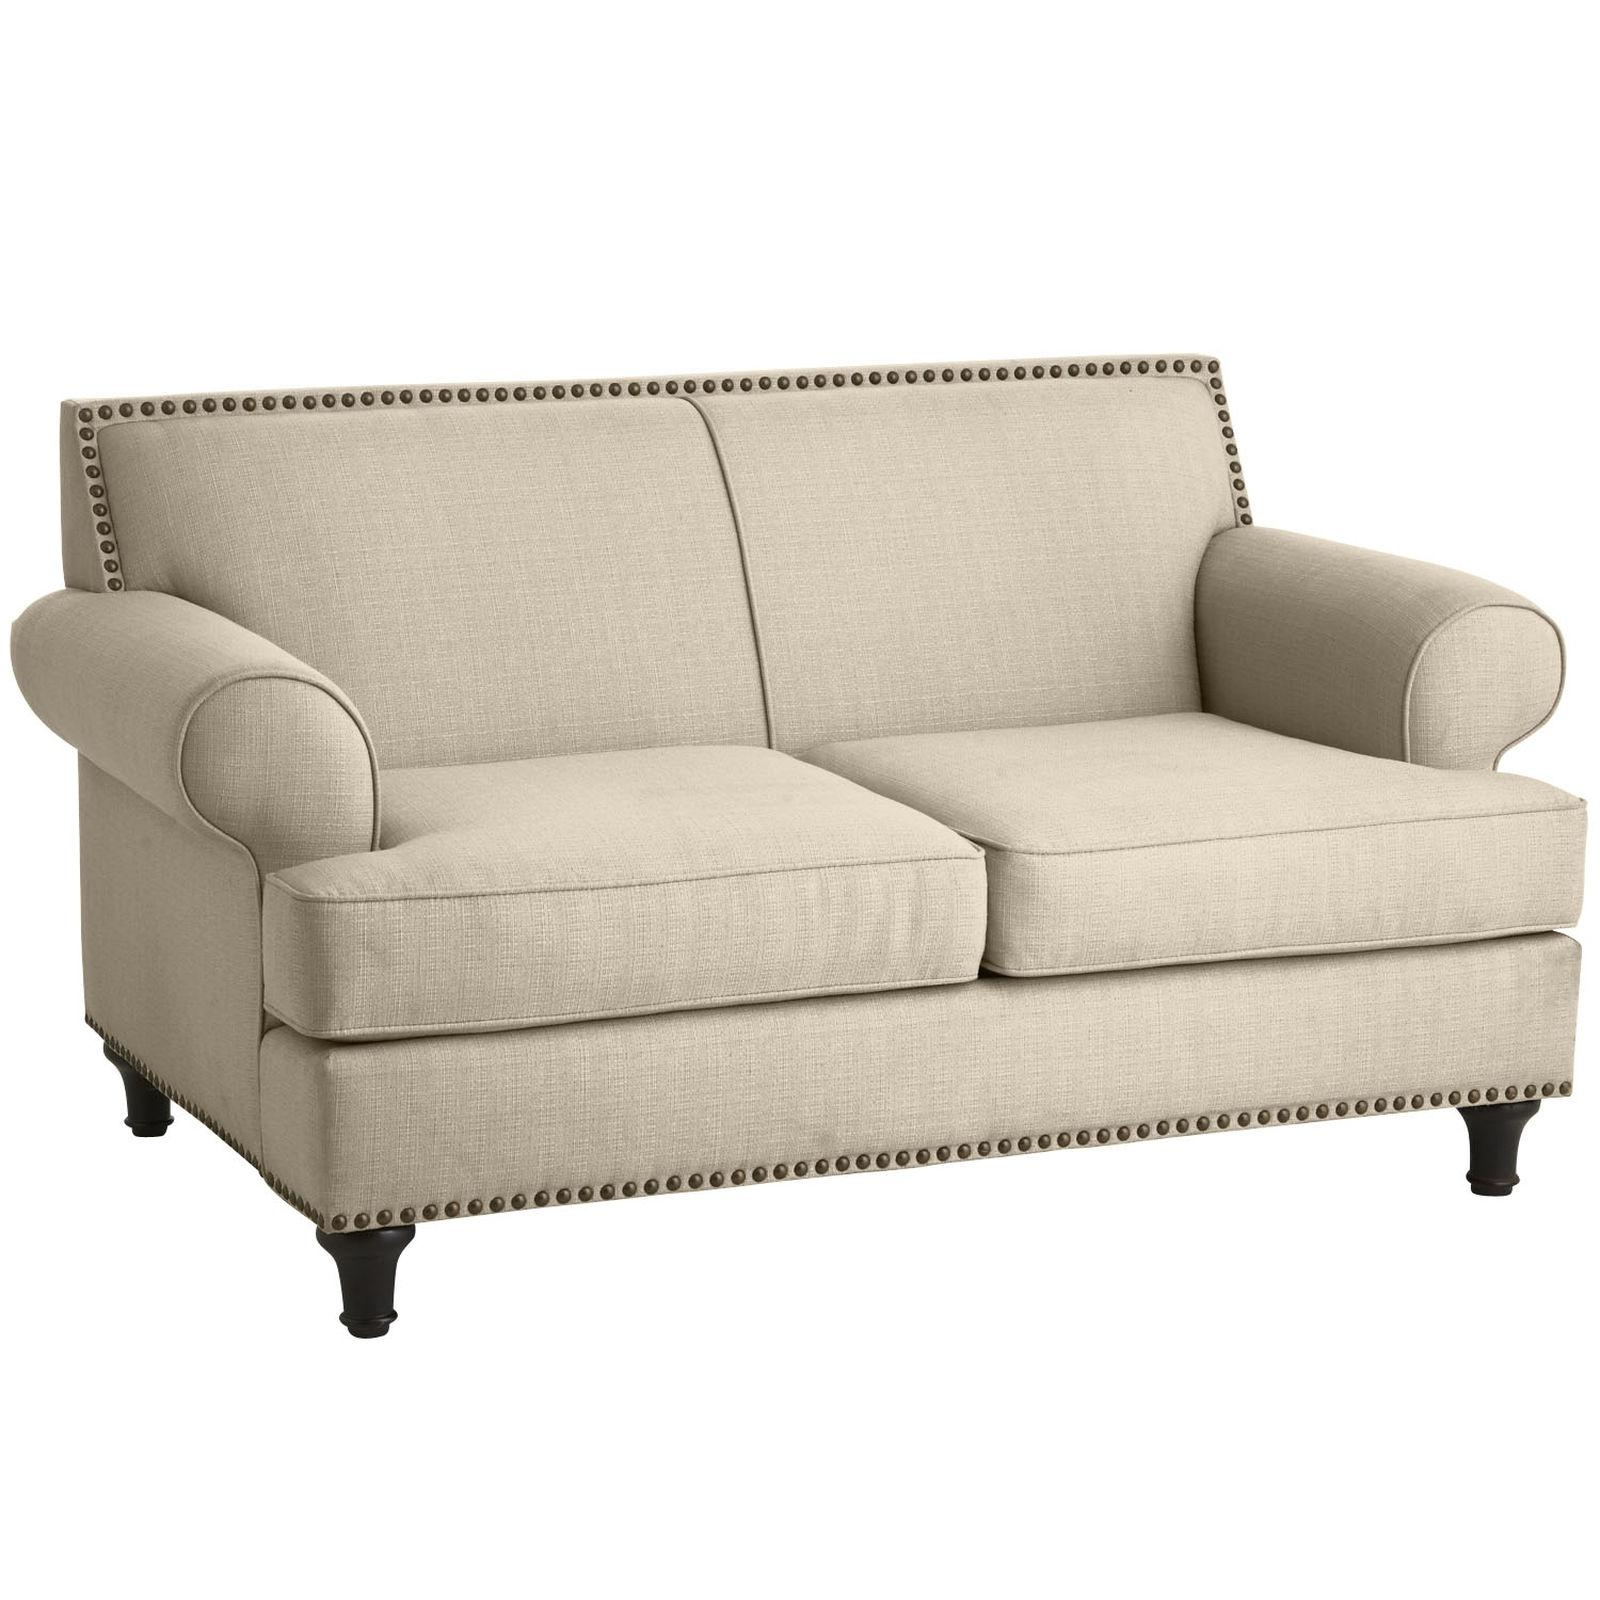 Pier One Sofa Bed